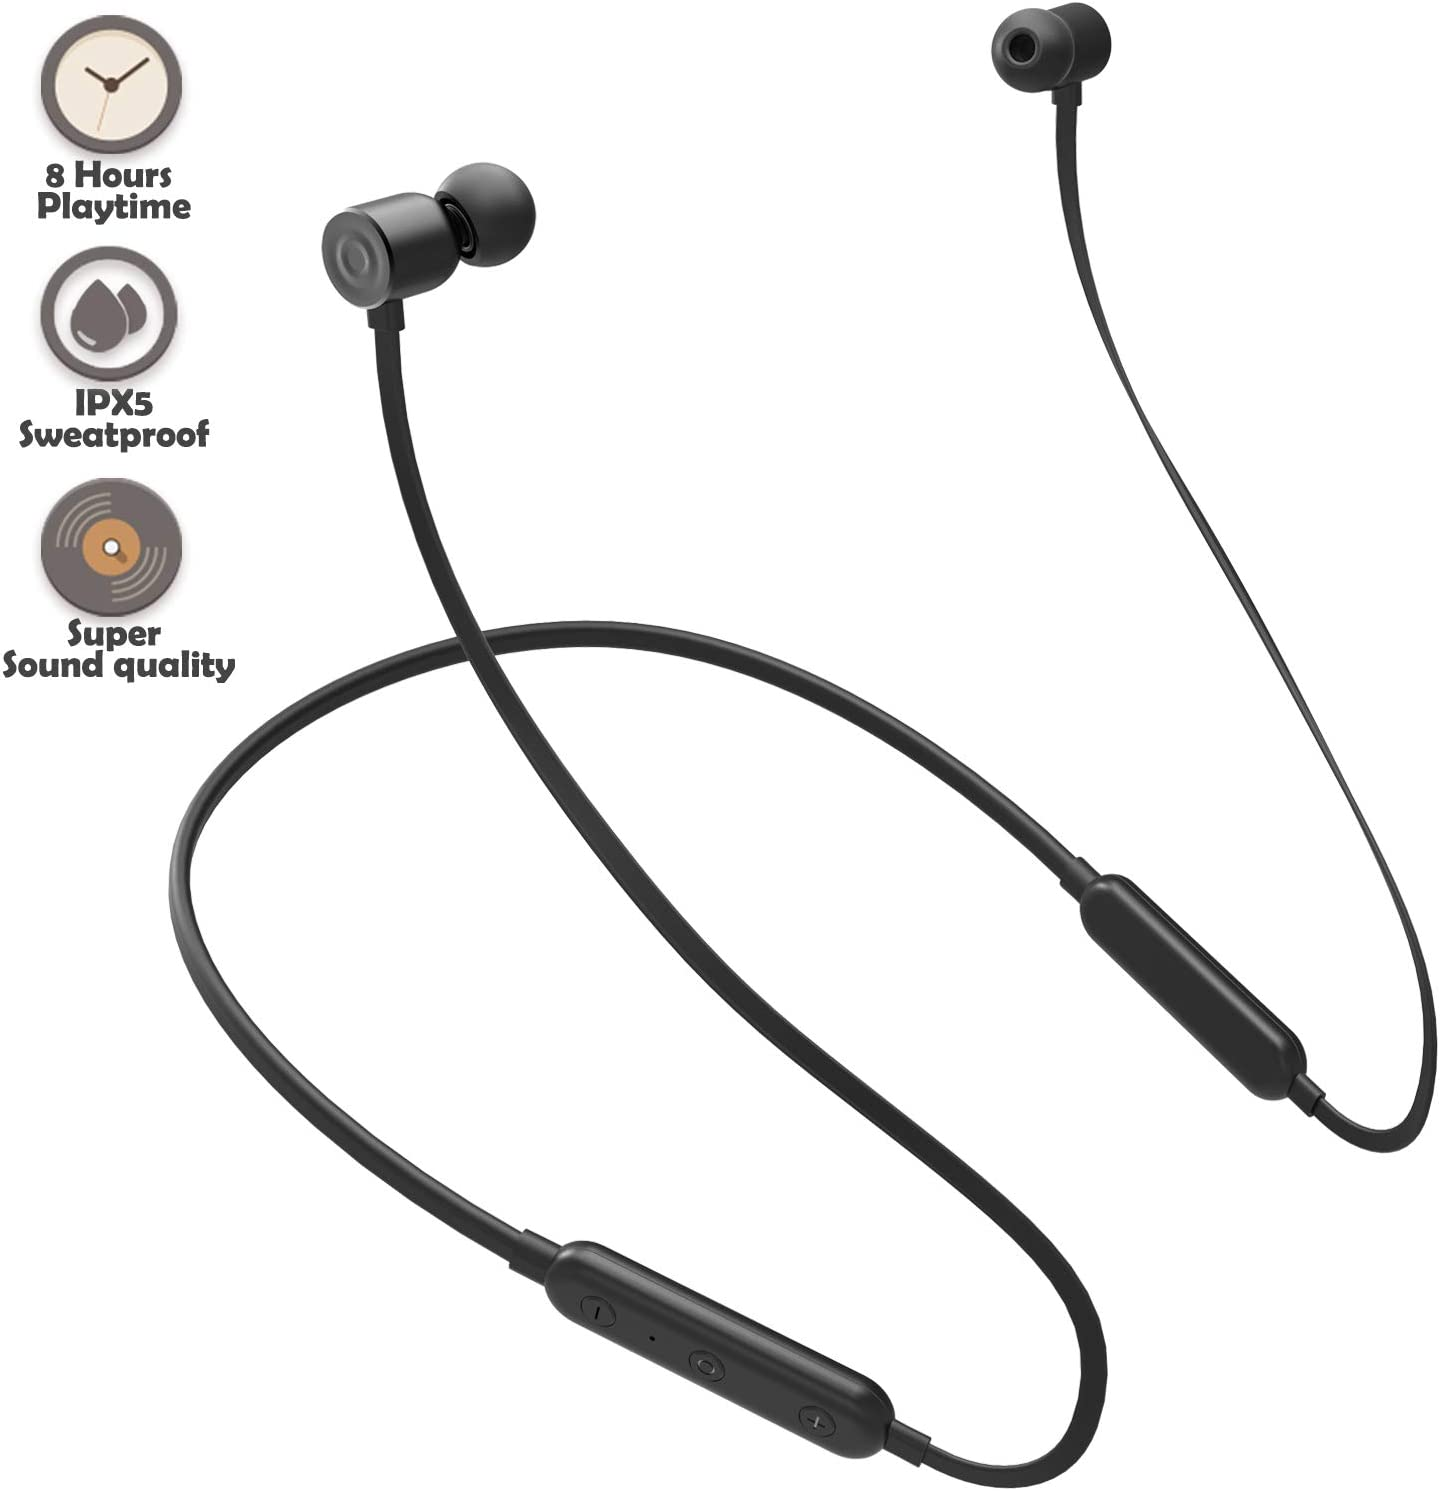 Bluetooth Headphones Wireless Earbuds 4.1 Magnetic Bluetooth Earphones Lightweight Headsets with Mic for in-Ear Sports Headphones for Running 8 Hours Play Time, Noise Cancelling, Sweatproof -Black